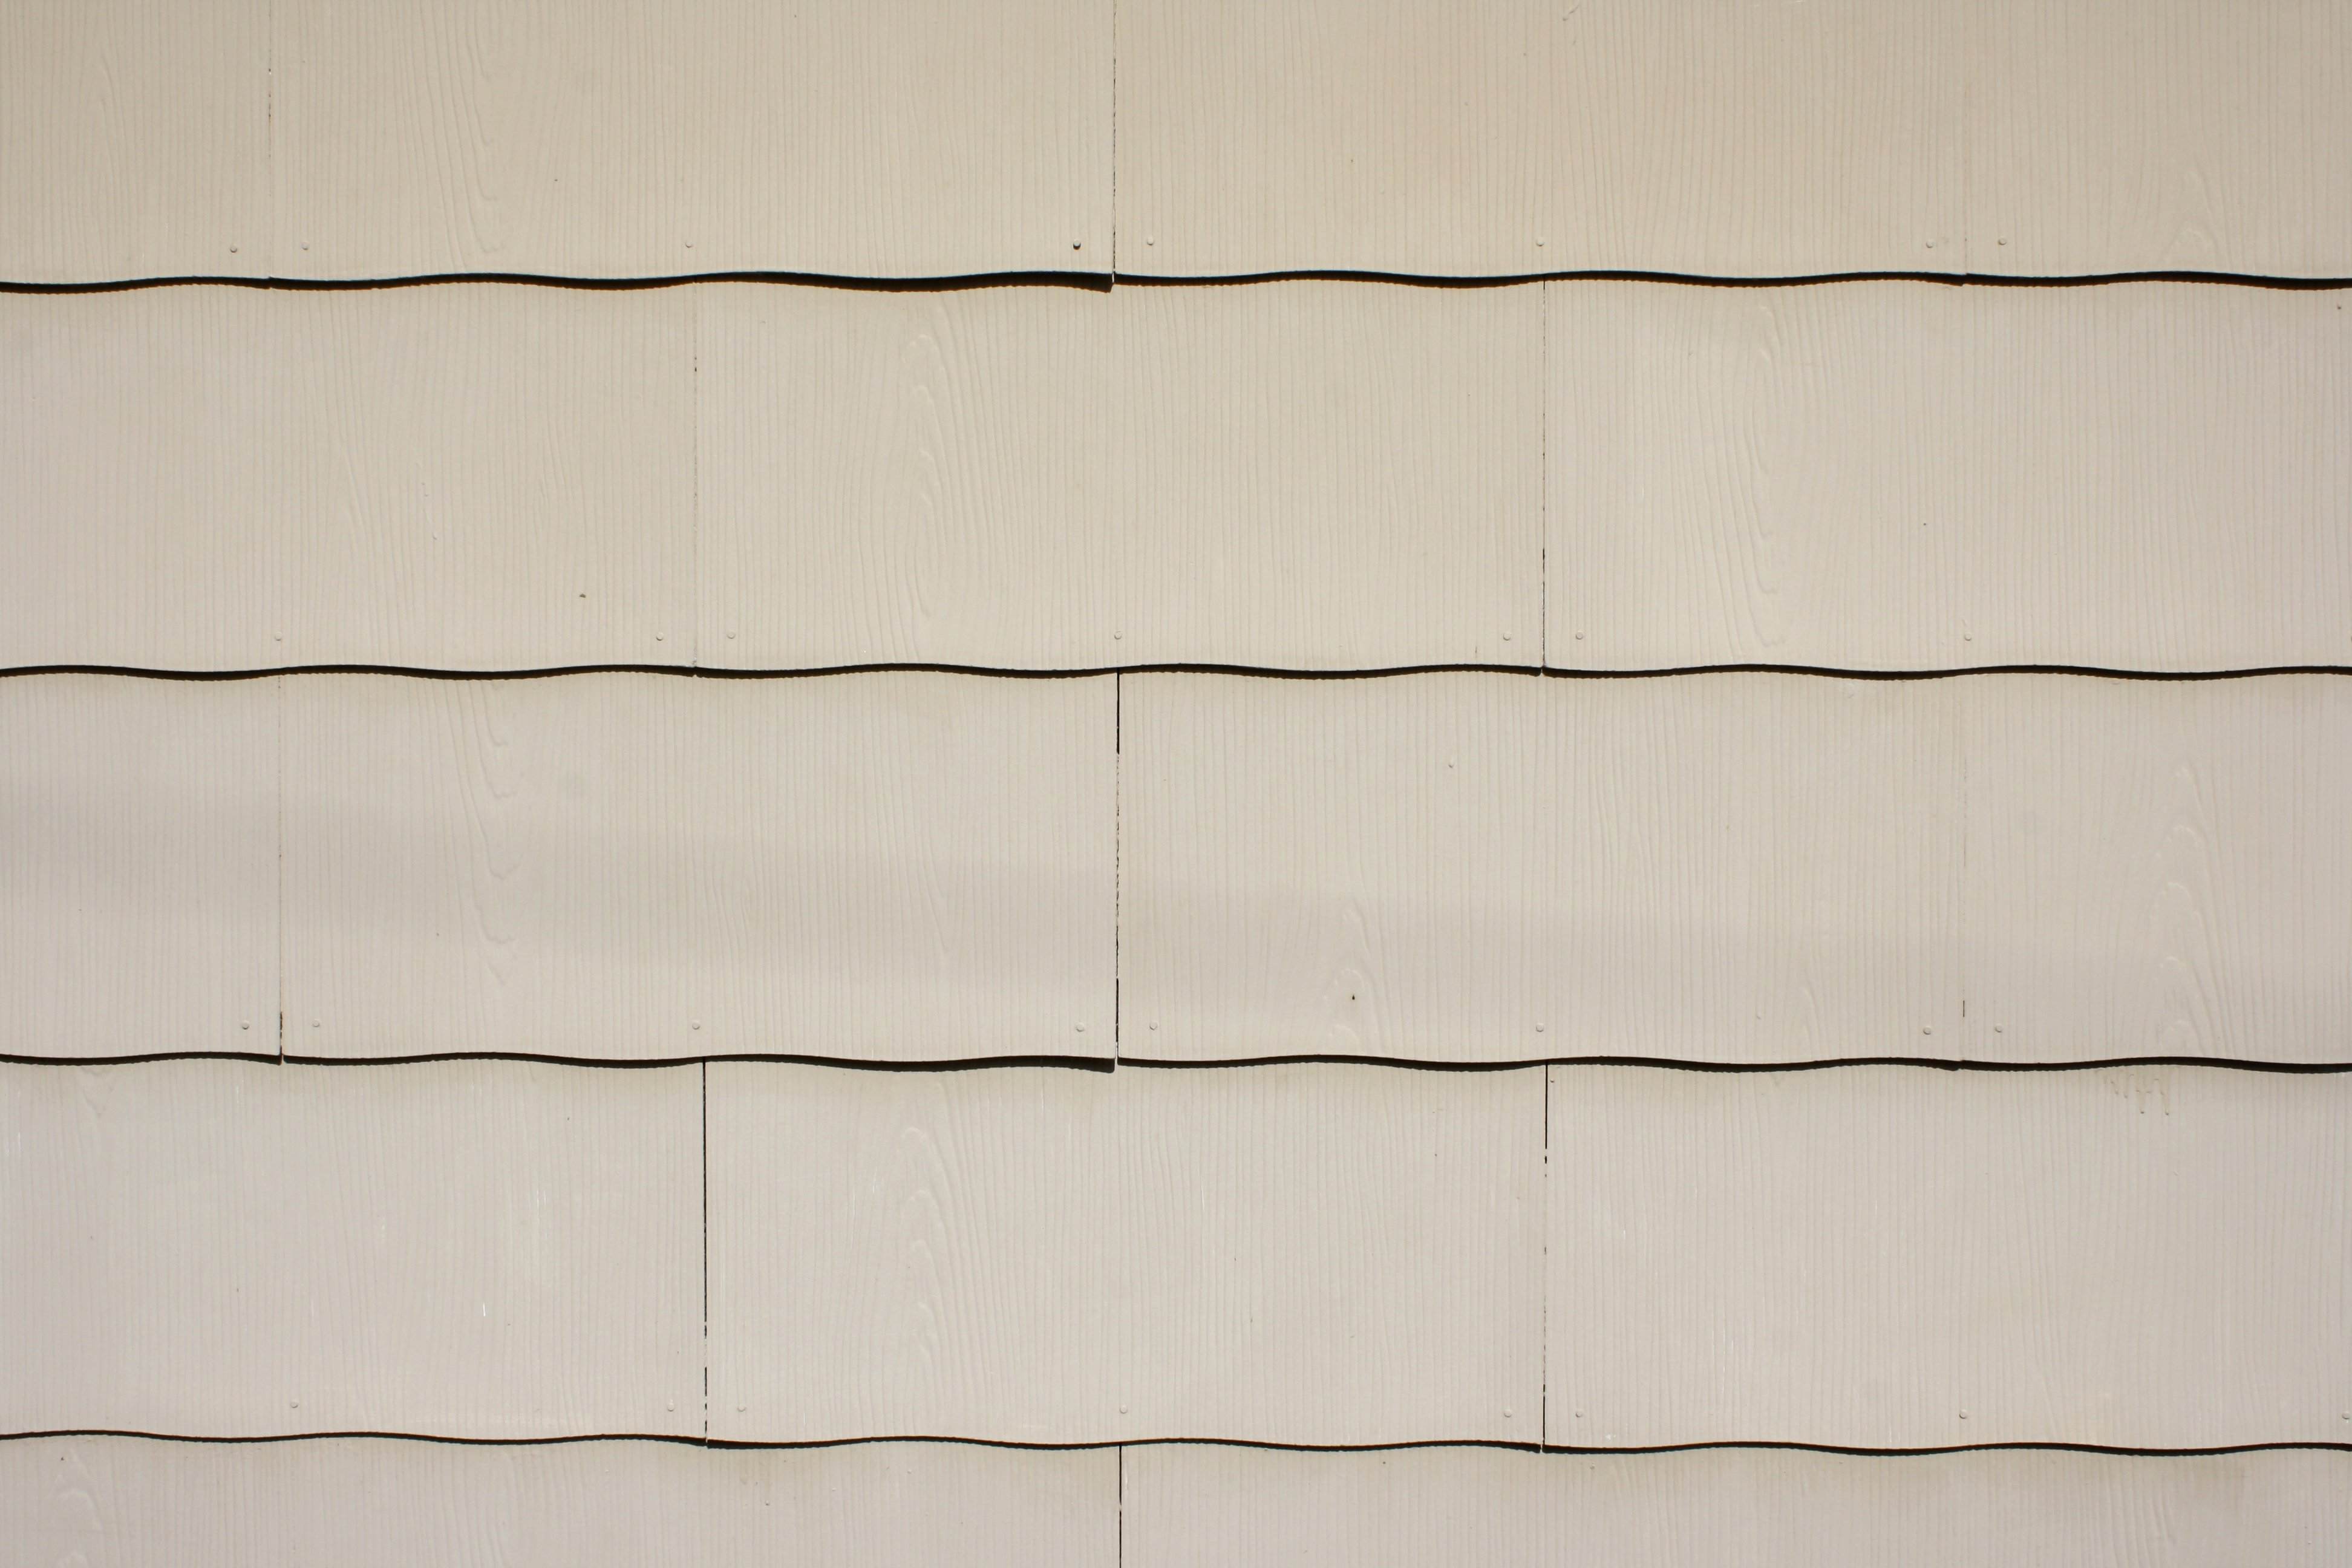 Tan scalloped asbestos siding shingles texture picture for Types of shingle siding